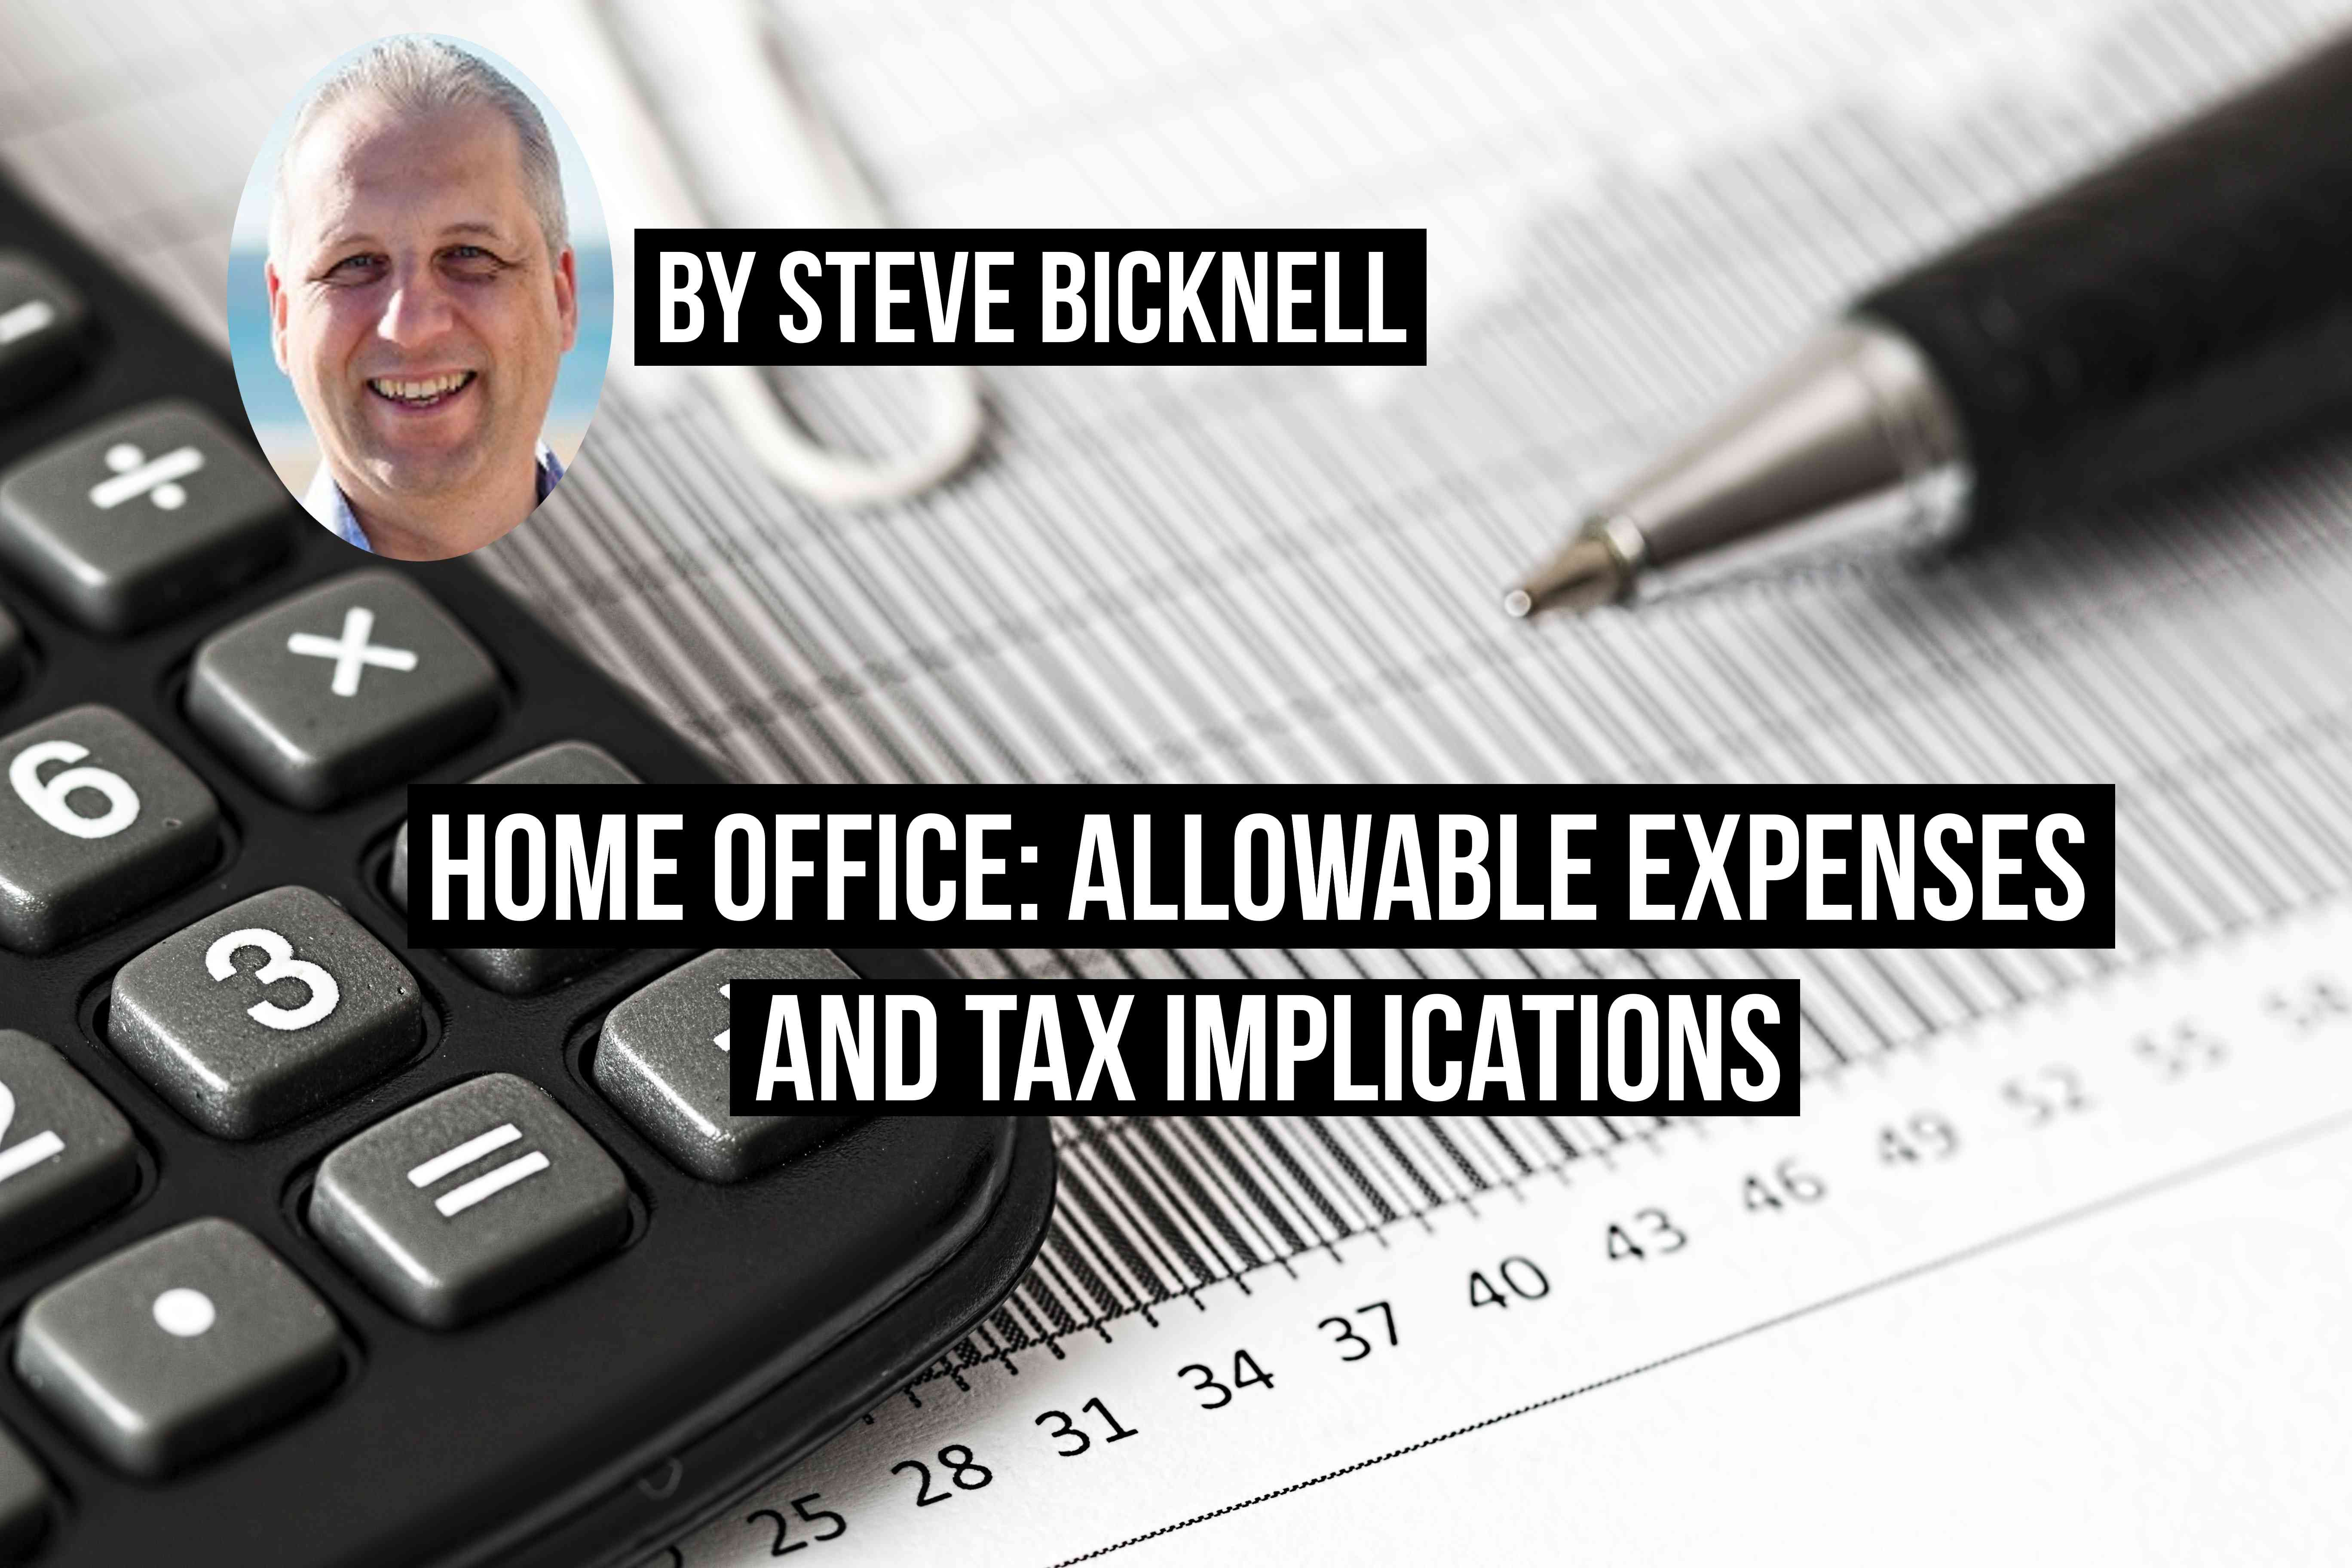 expenses and tax implications title